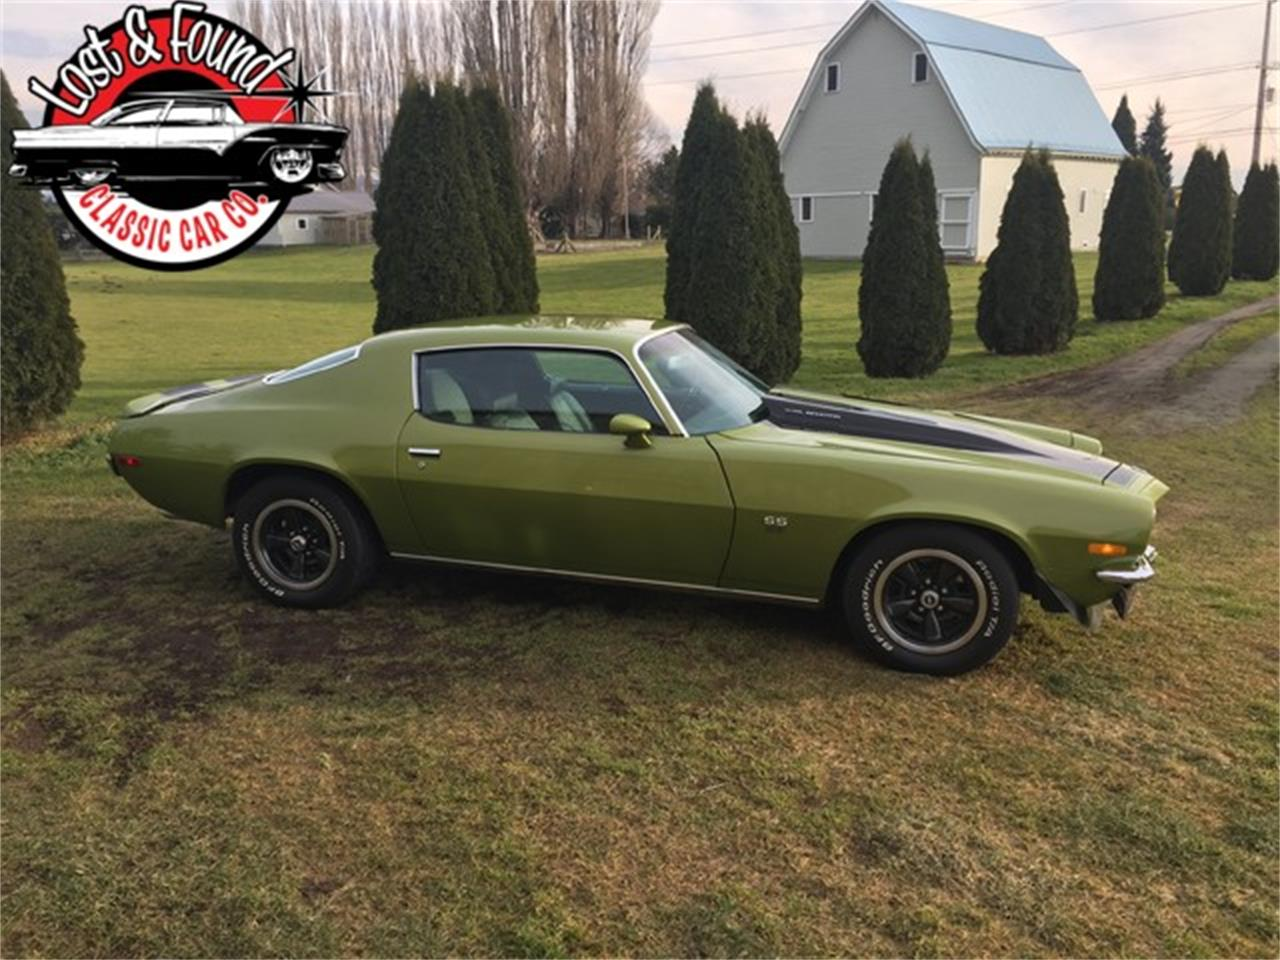 Large Picture of Classic 1970 Camaro located in Mount Vernon Washington - $36,950.00 - KCR1